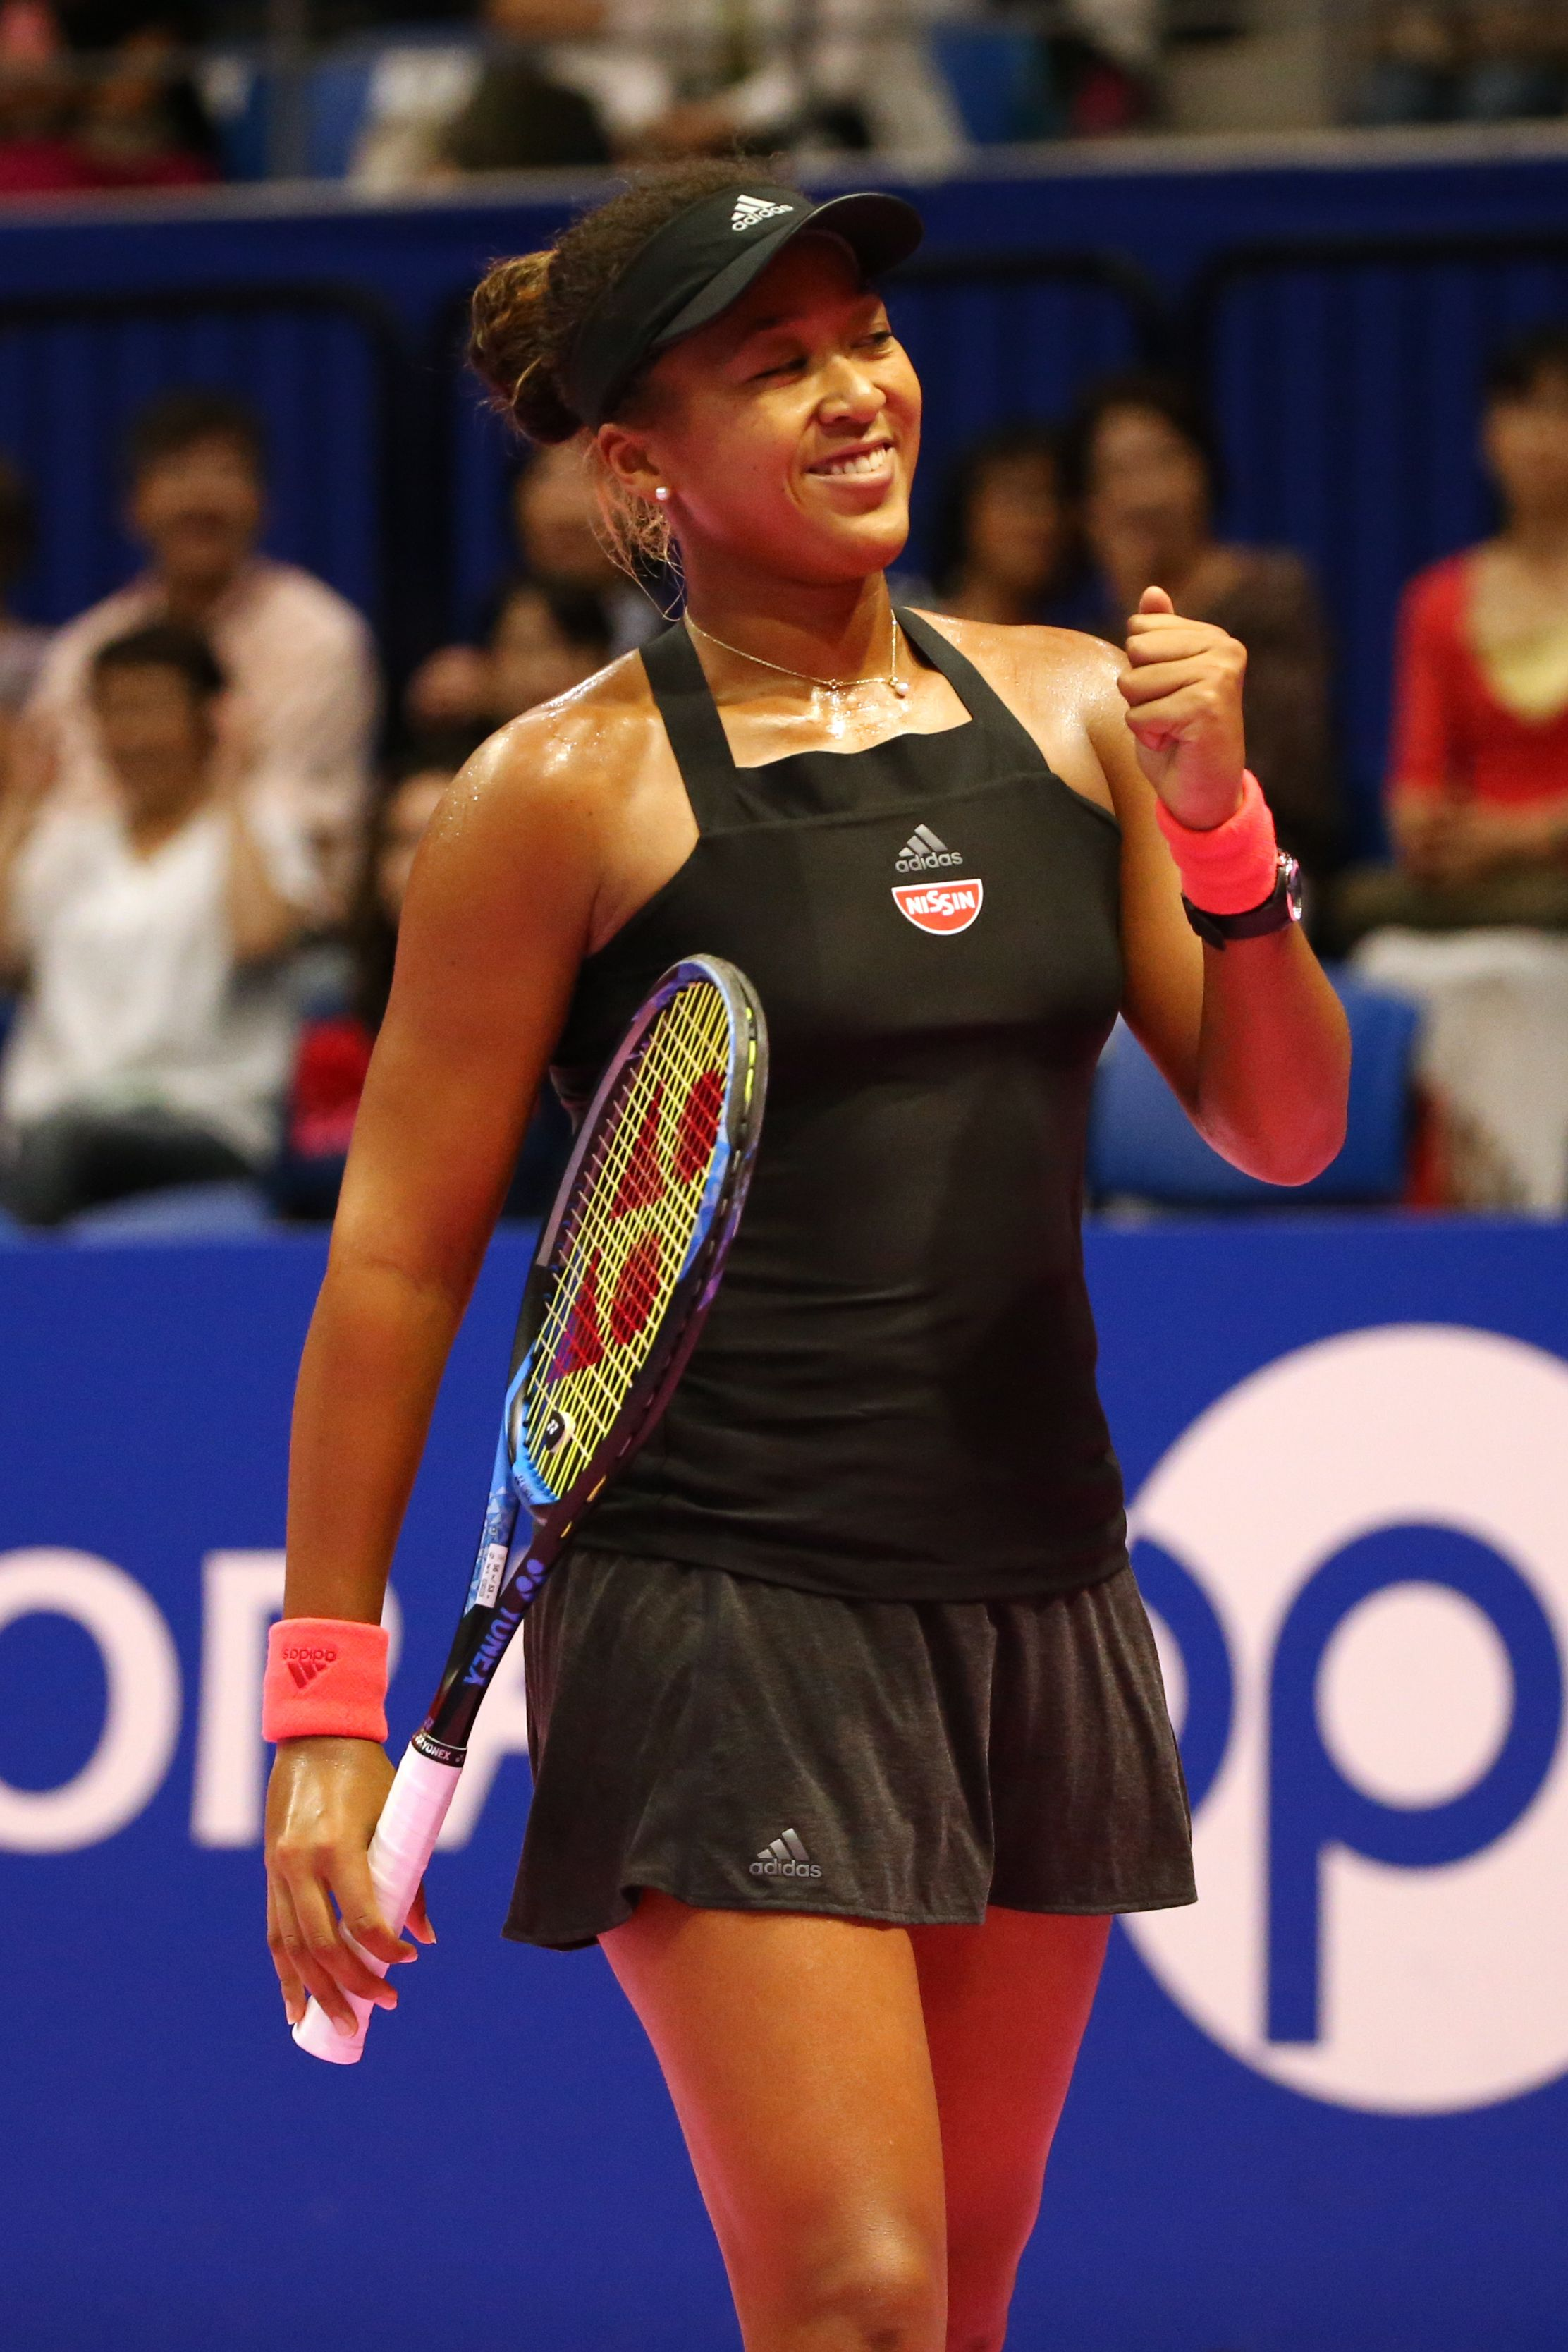 Naomi Osaka celebrating her victory in the singles second round match against Dominika Cibulkova on September 19, 2018 in Tokyo. | Photo: Getty Images